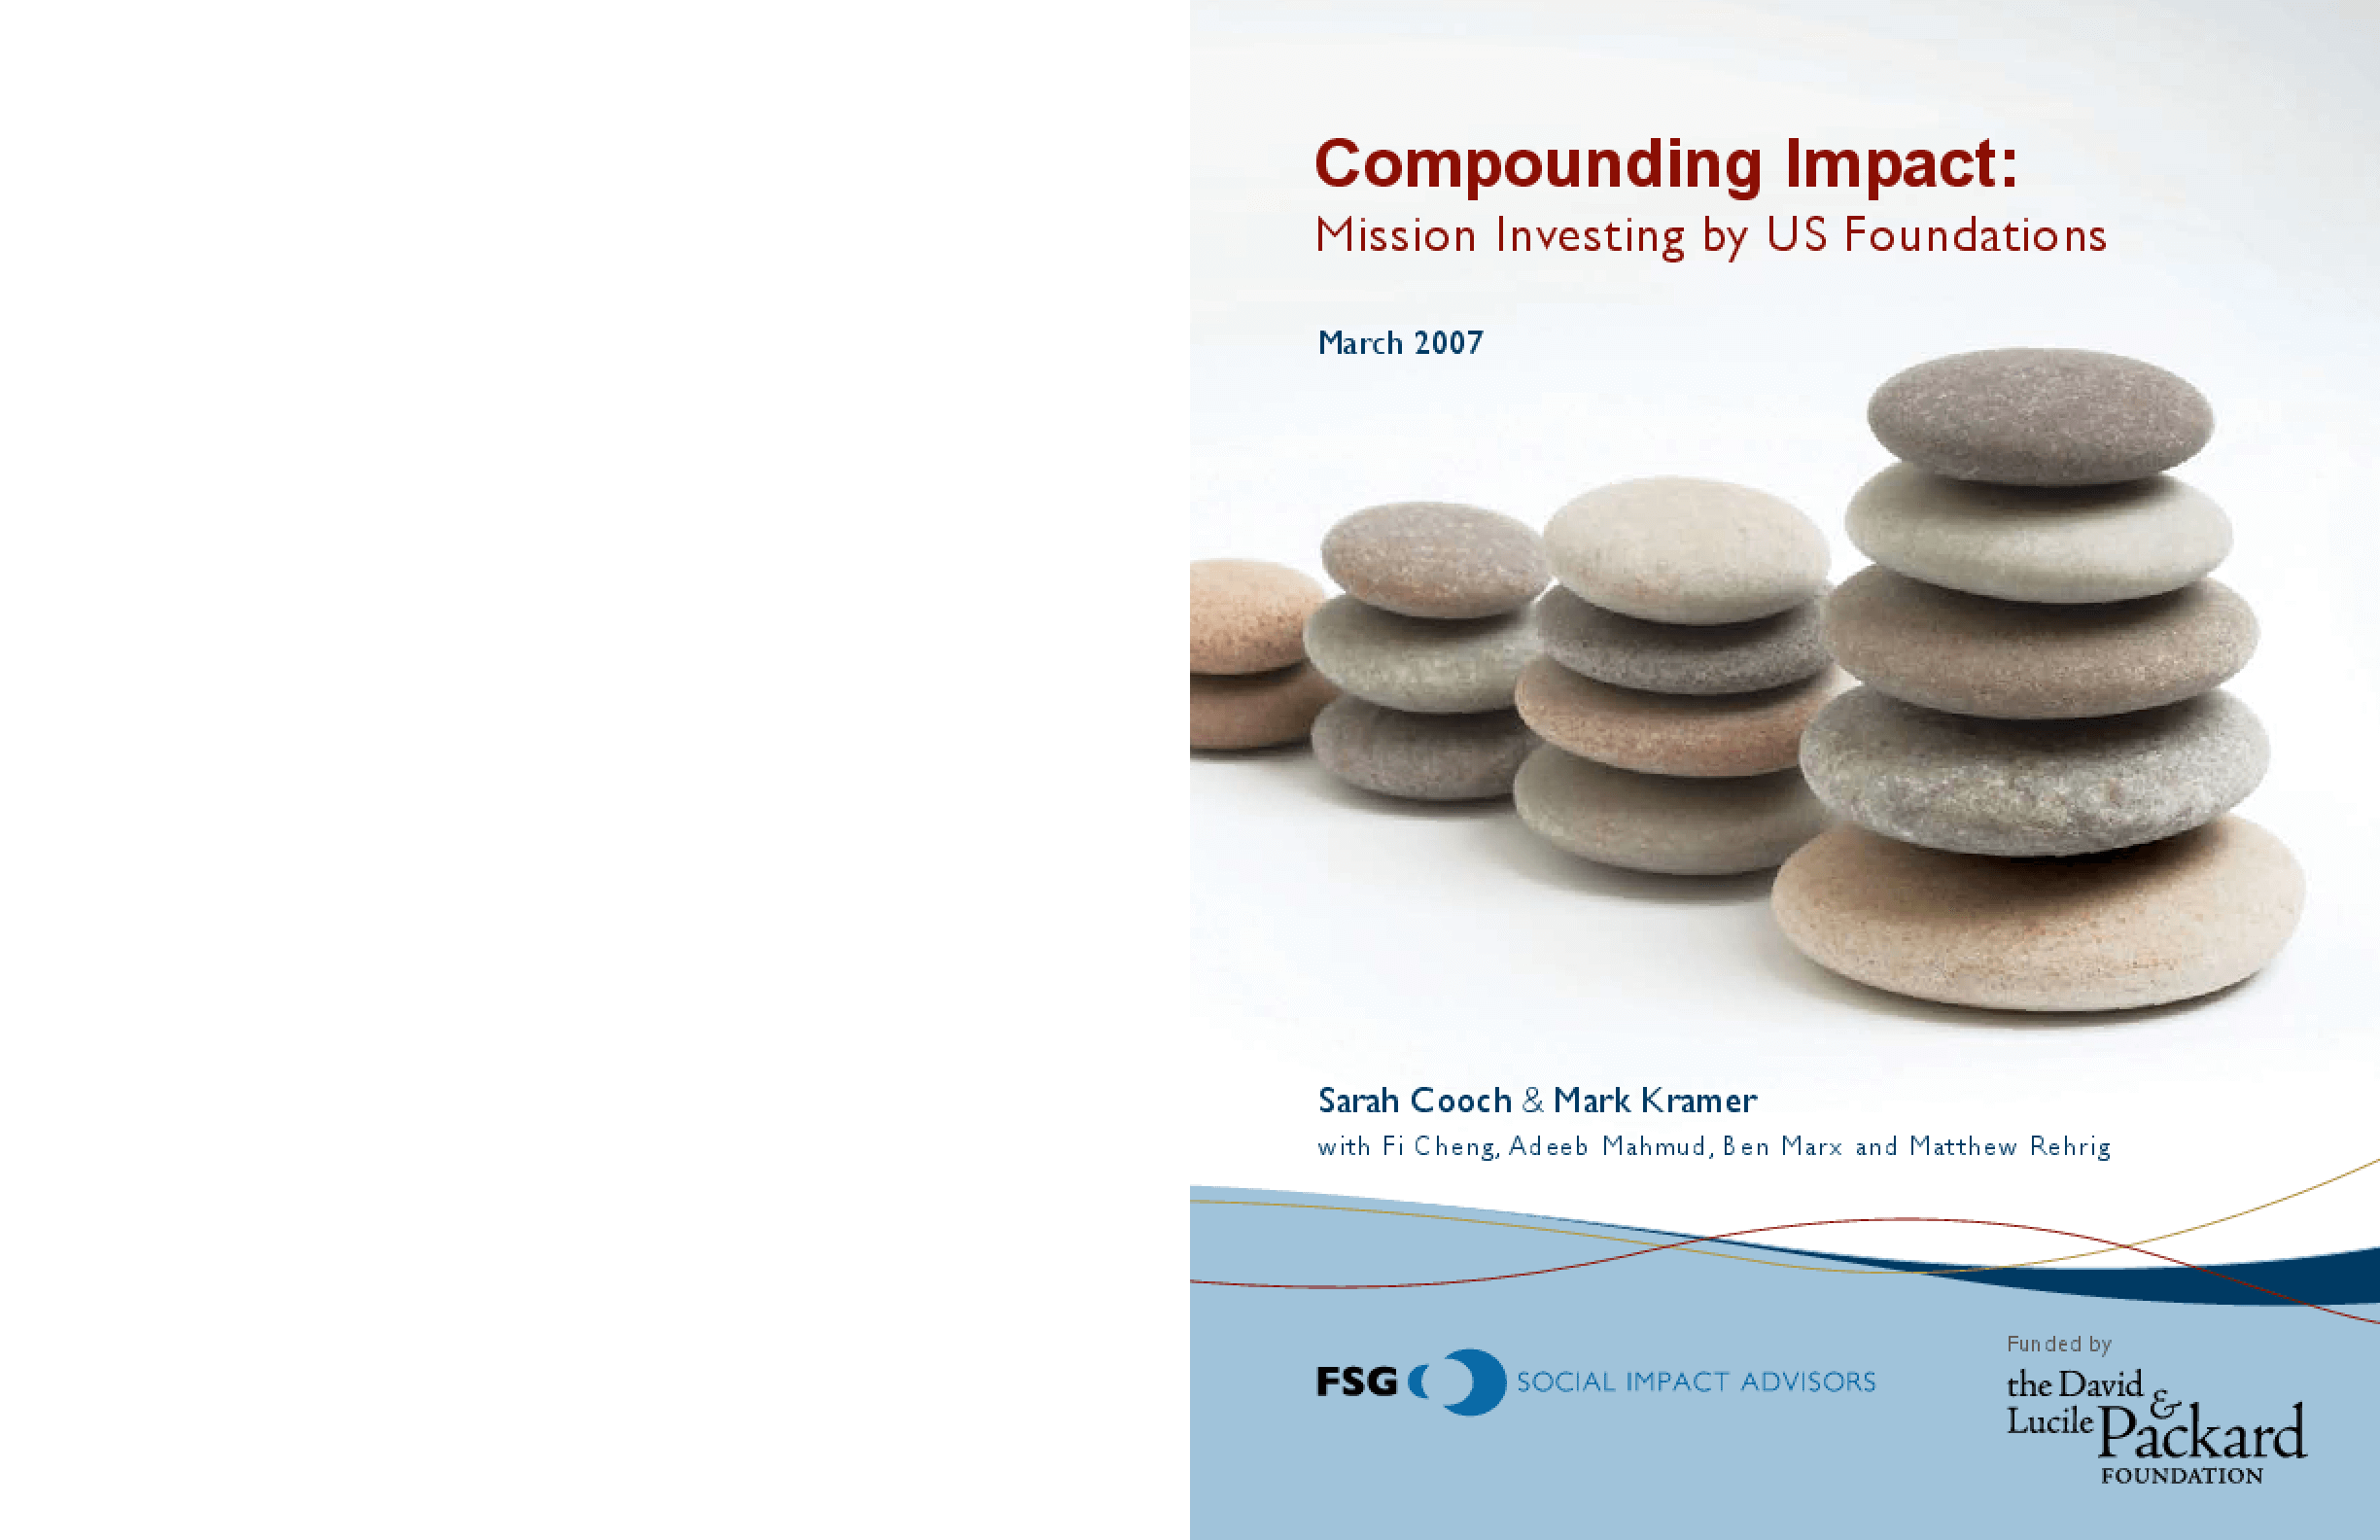 Compounding Impact: Mission Investing by U.S. Foundations